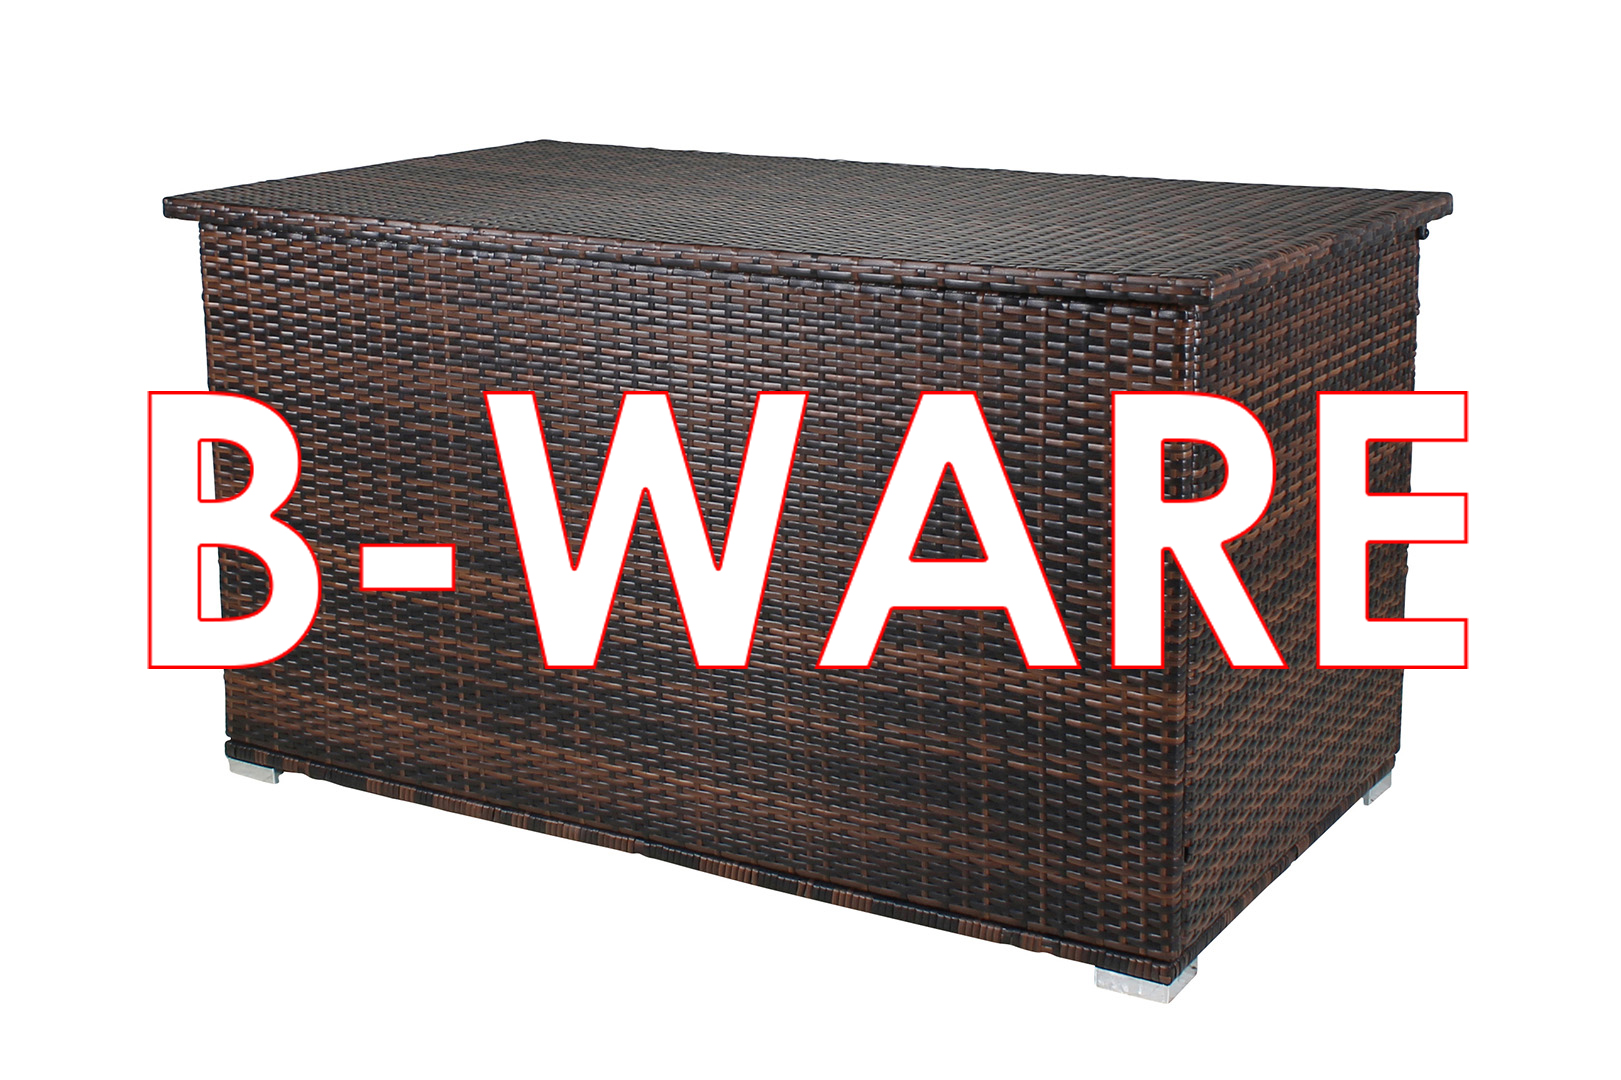 b ware miweba caribbian polyrattan auflagenbox grande 950 liter gartenm bel gebraucht b. Black Bedroom Furniture Sets. Home Design Ideas